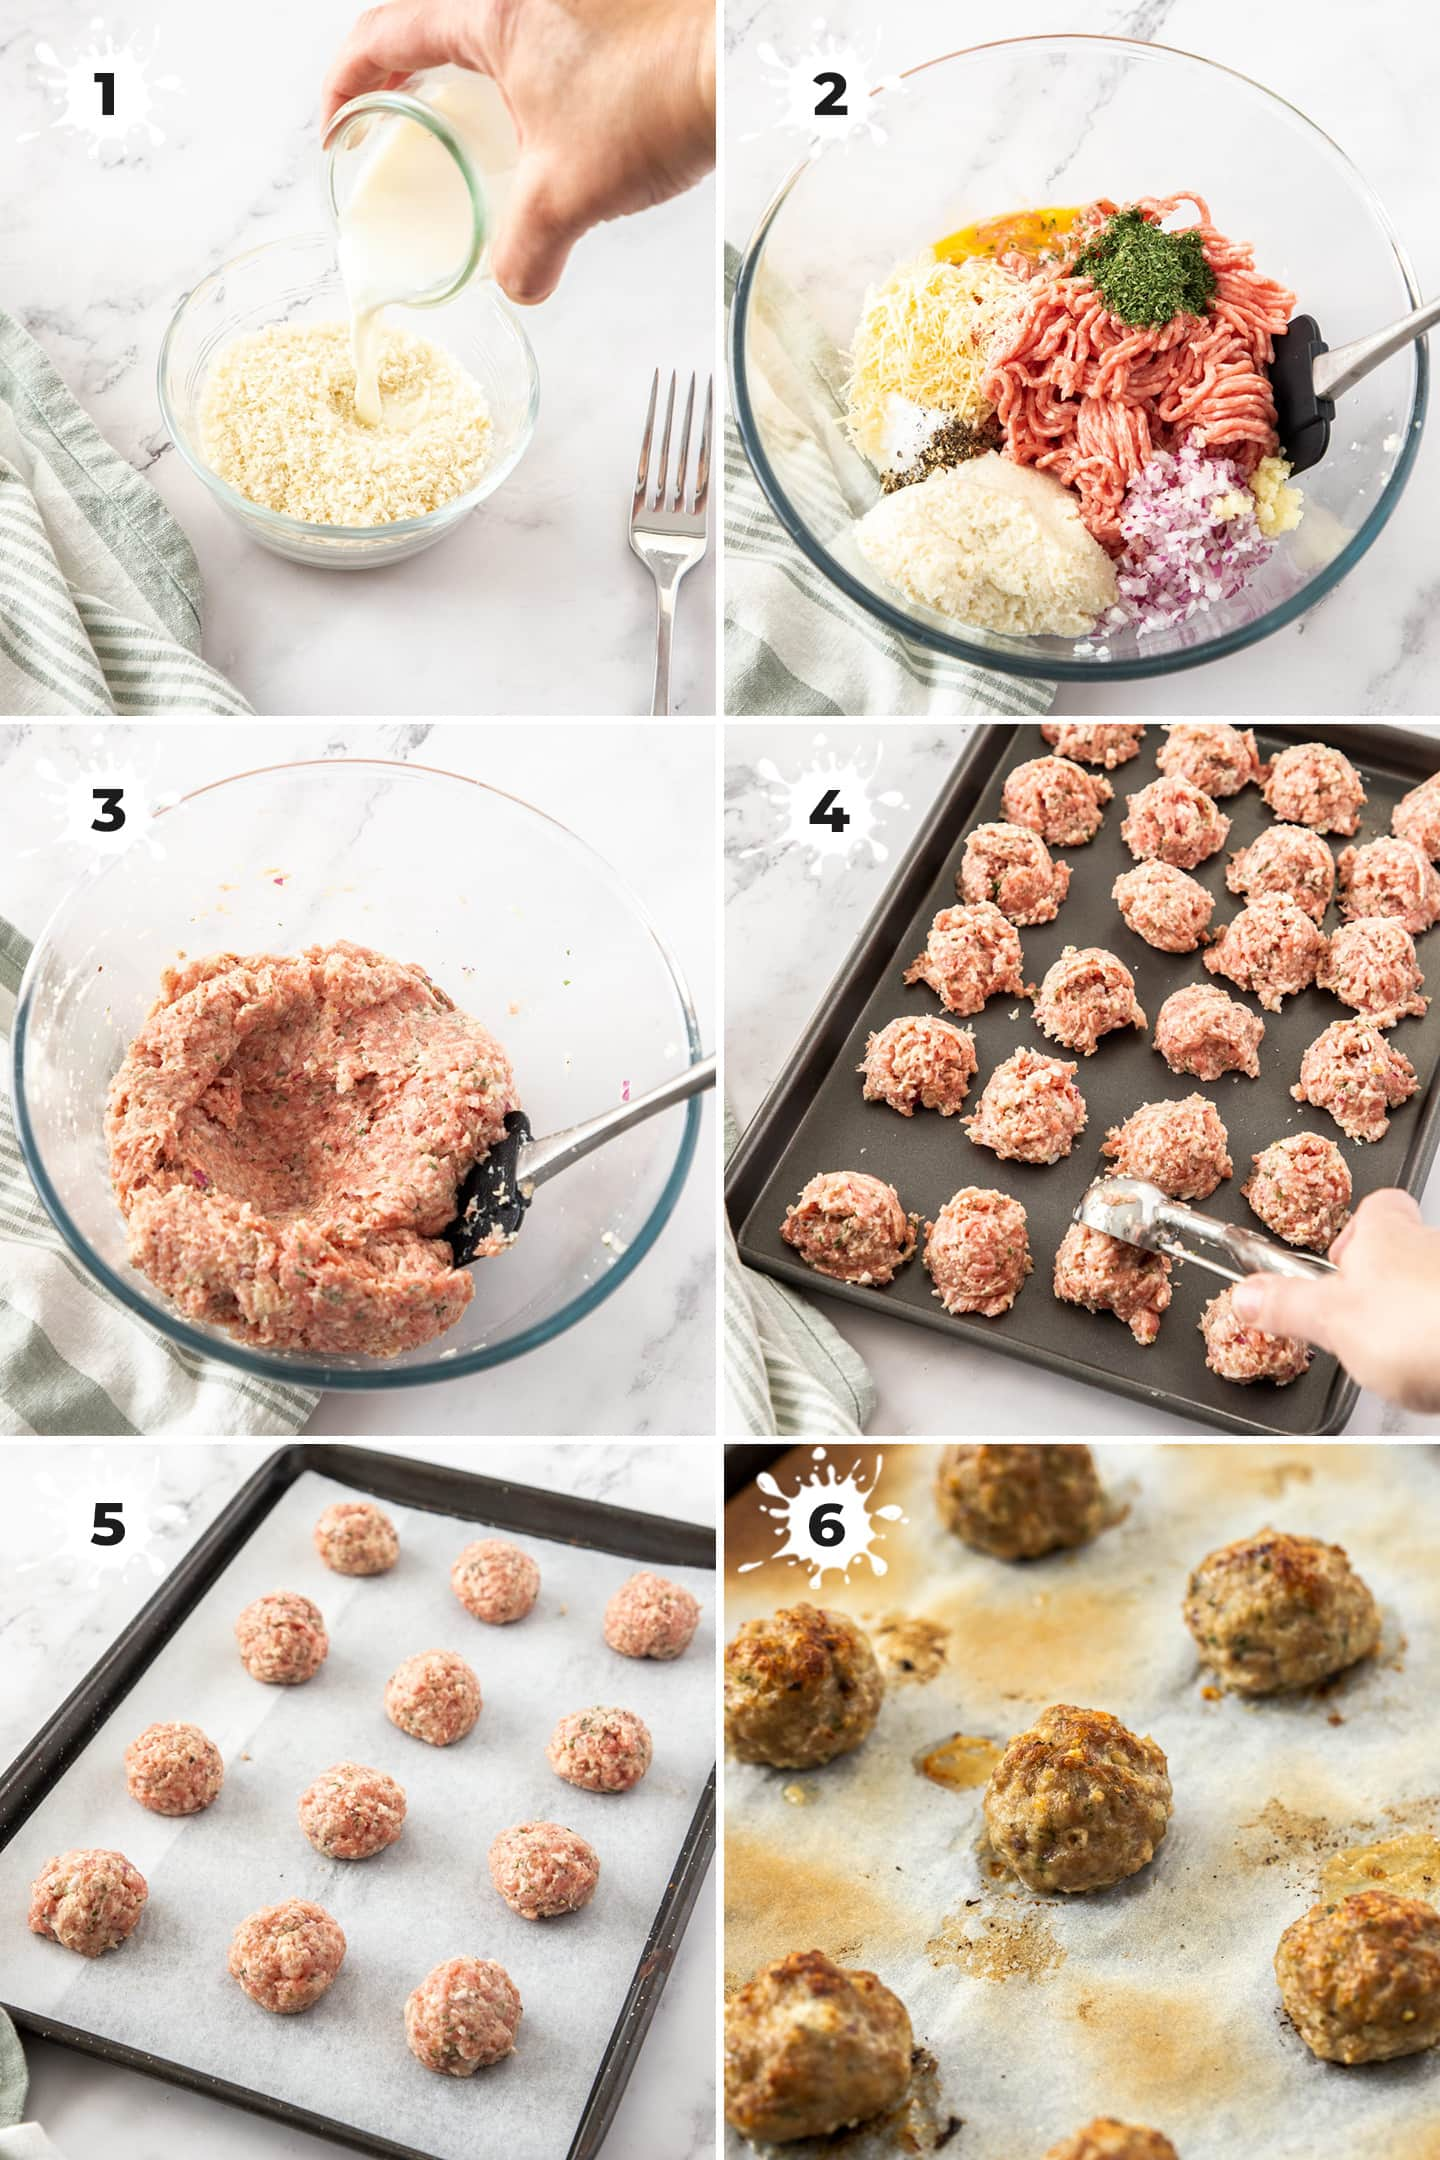 6 images showing the steps to making meatballs.